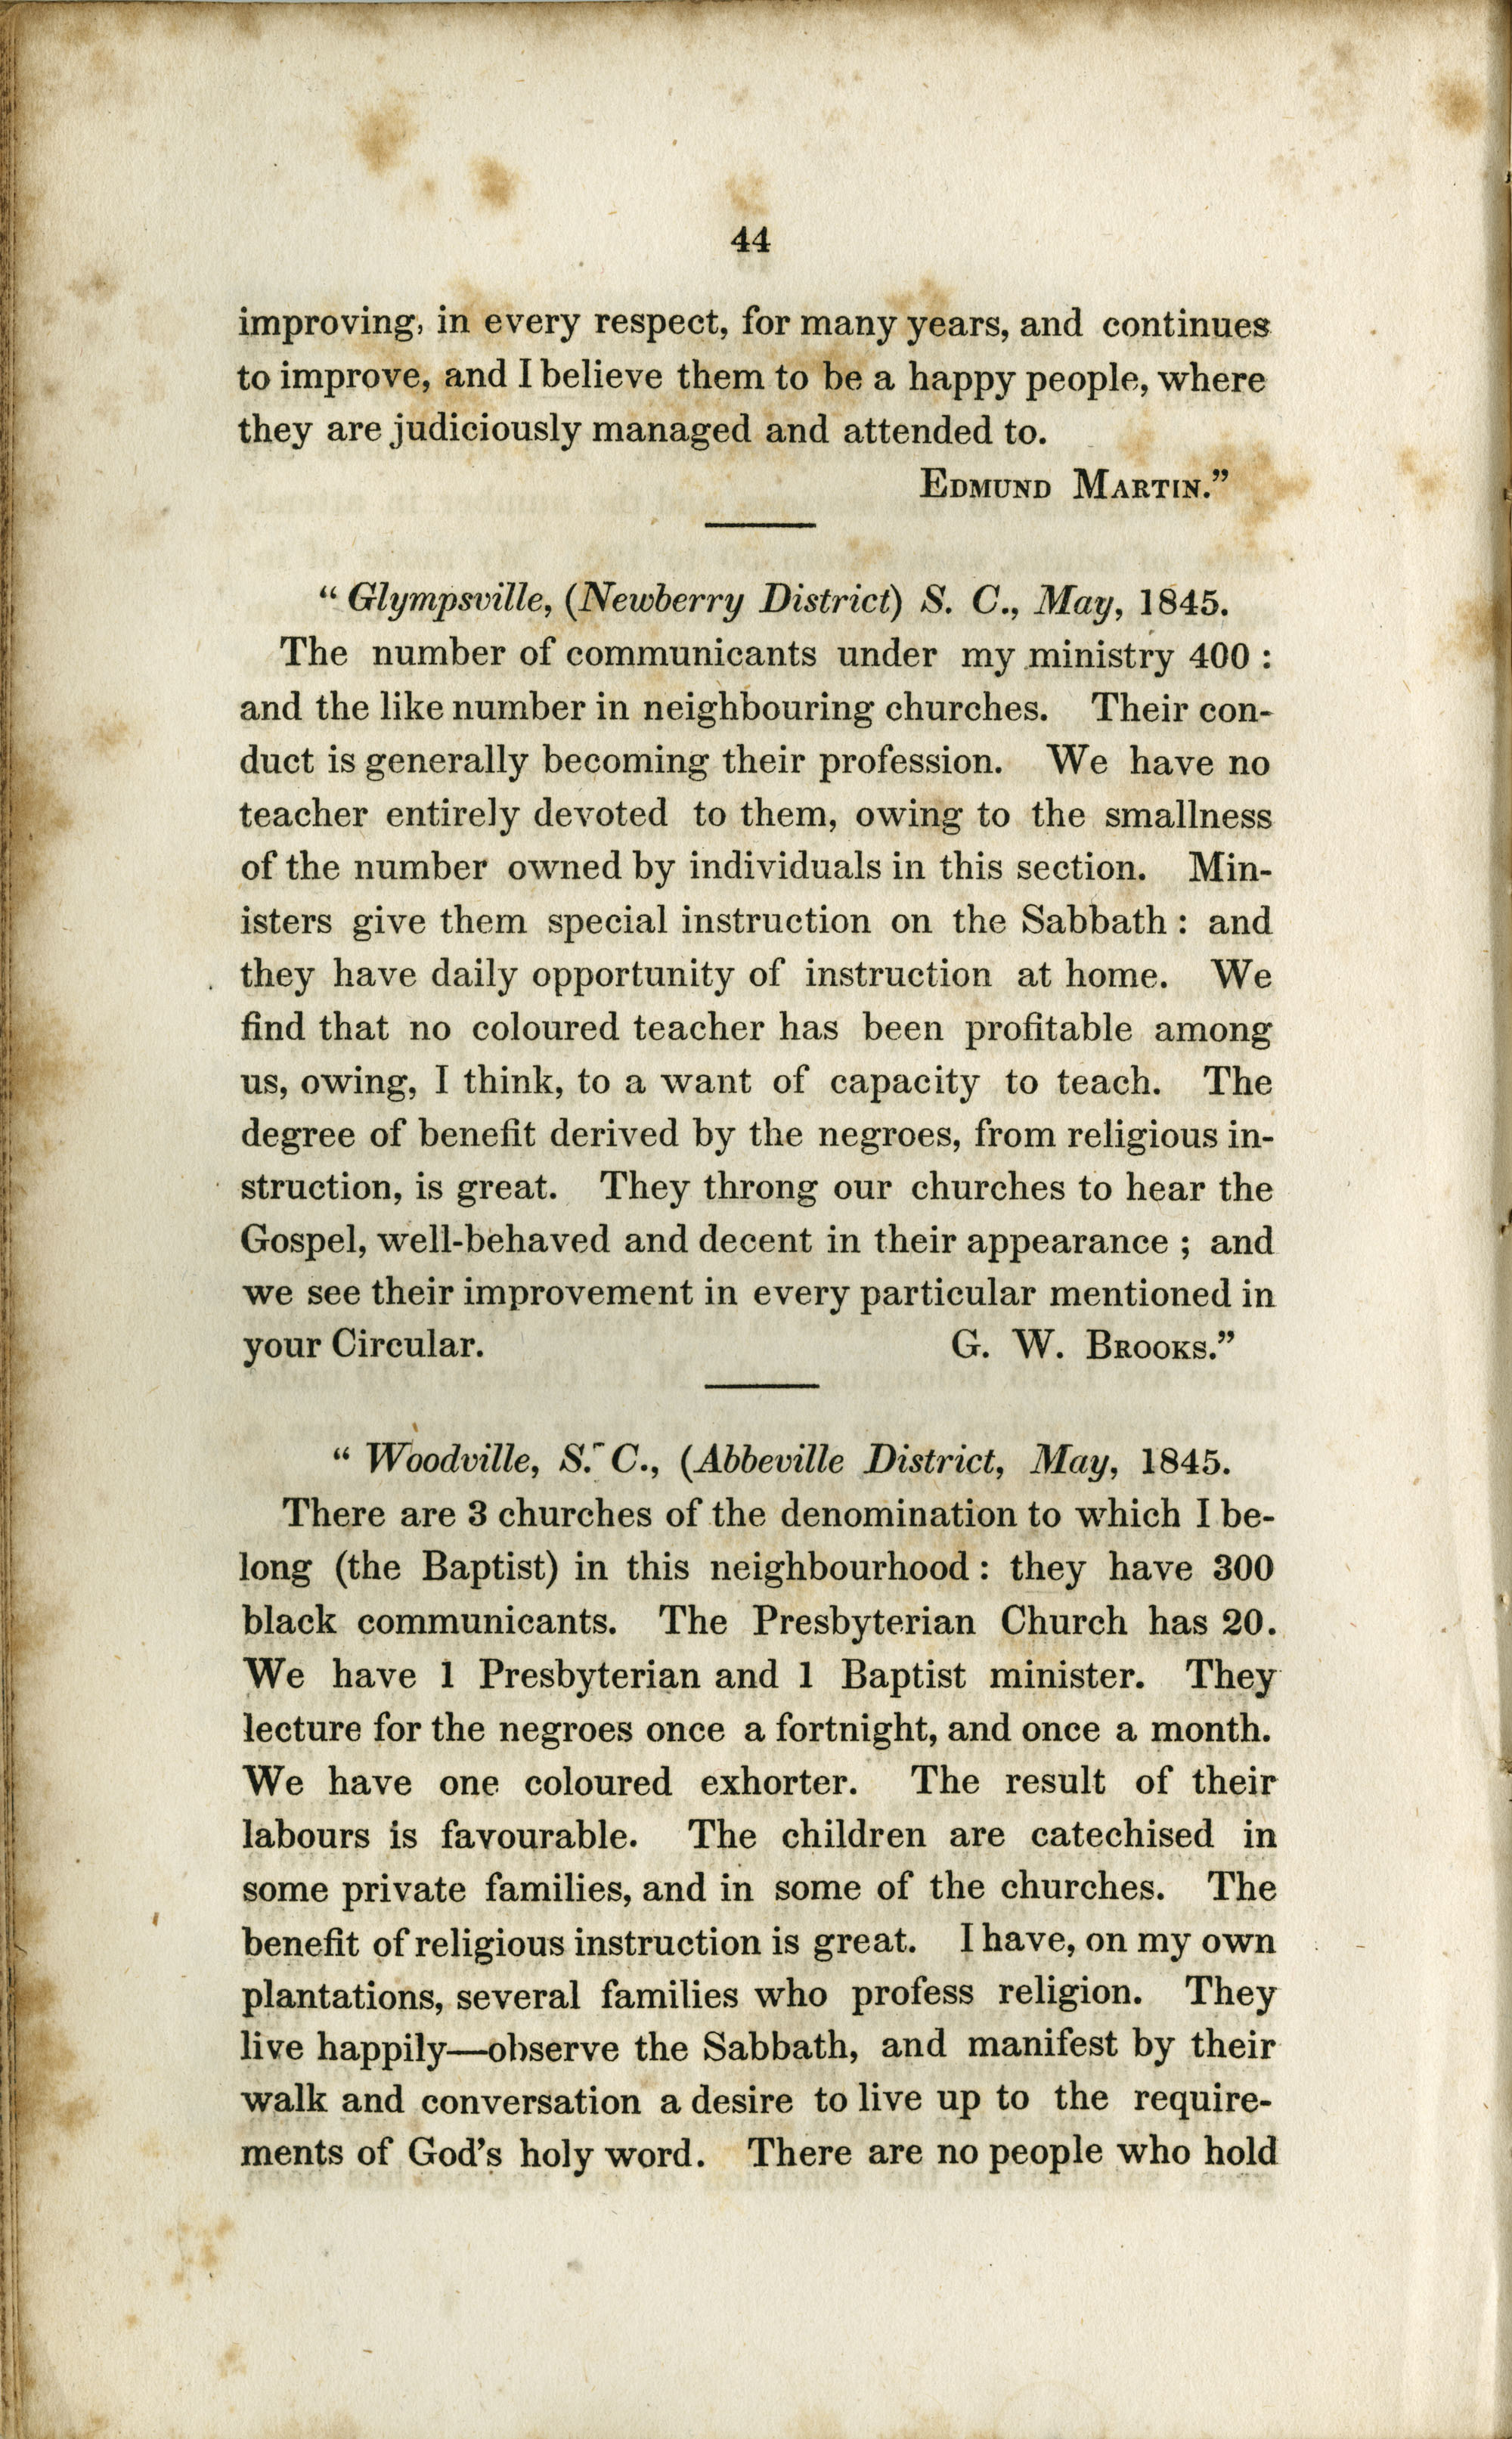 Report of the Committee, Page 44